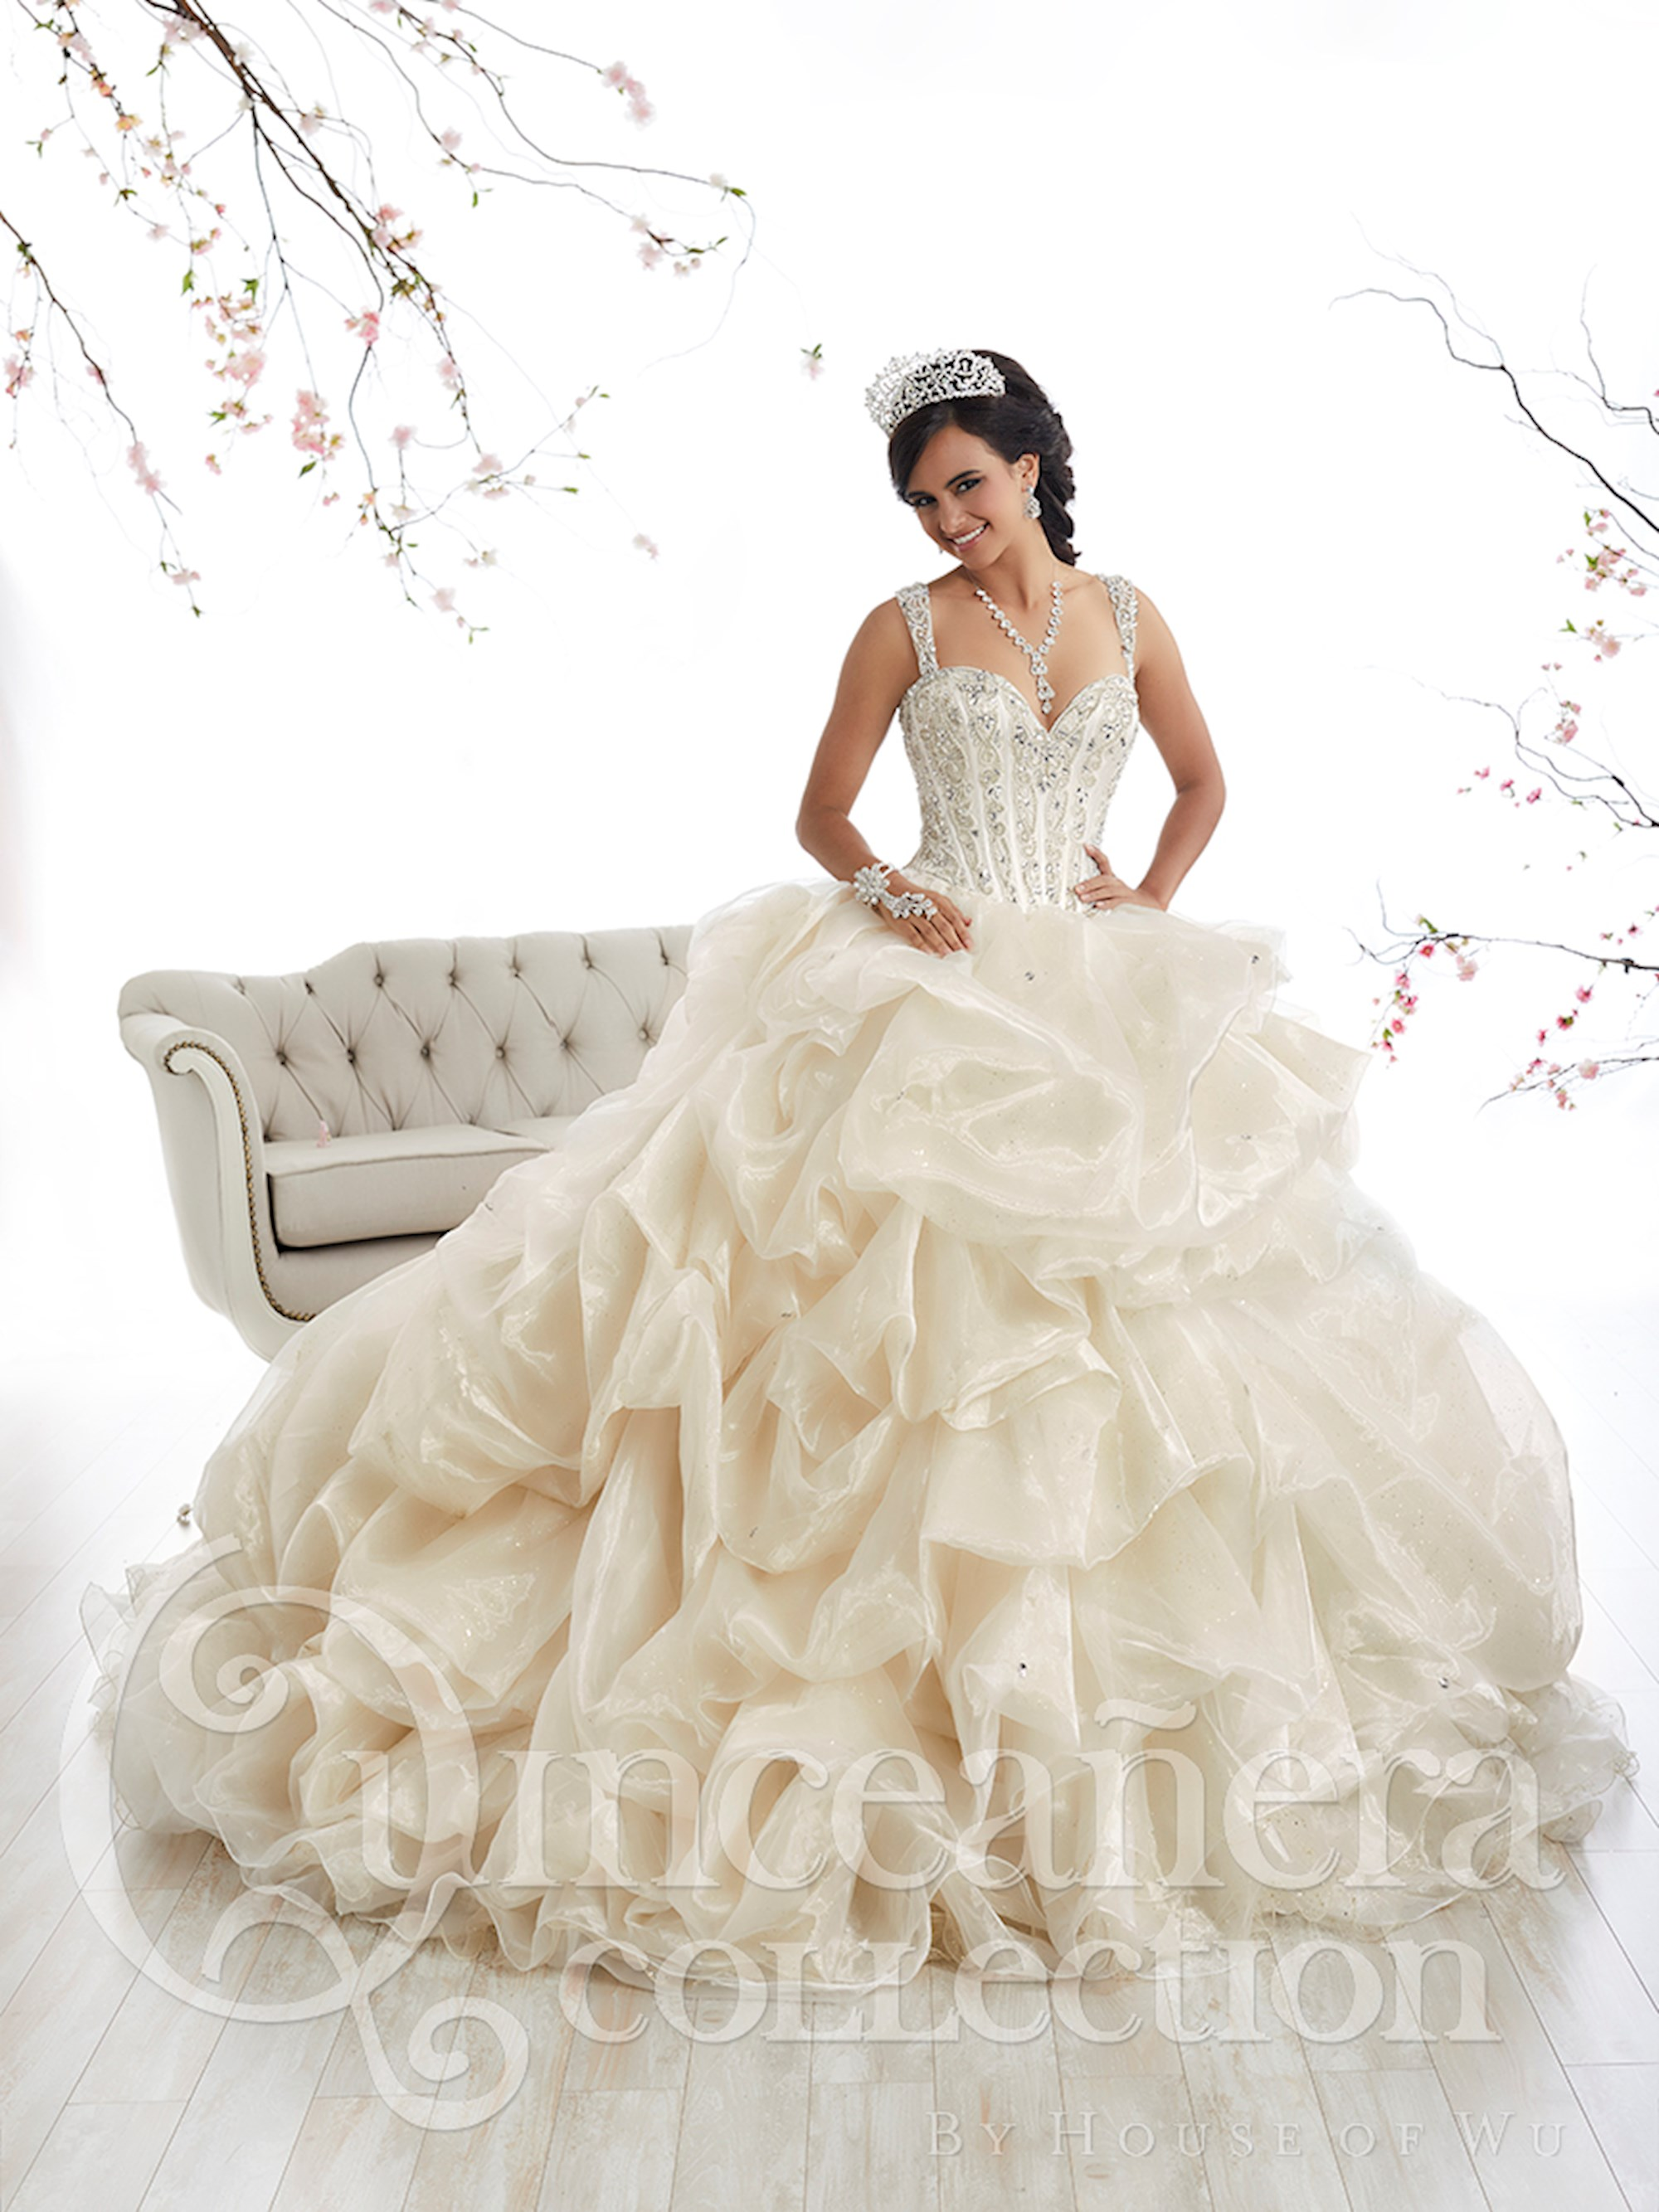 176b614127 Quinceanera Collection (HoW) - 26868